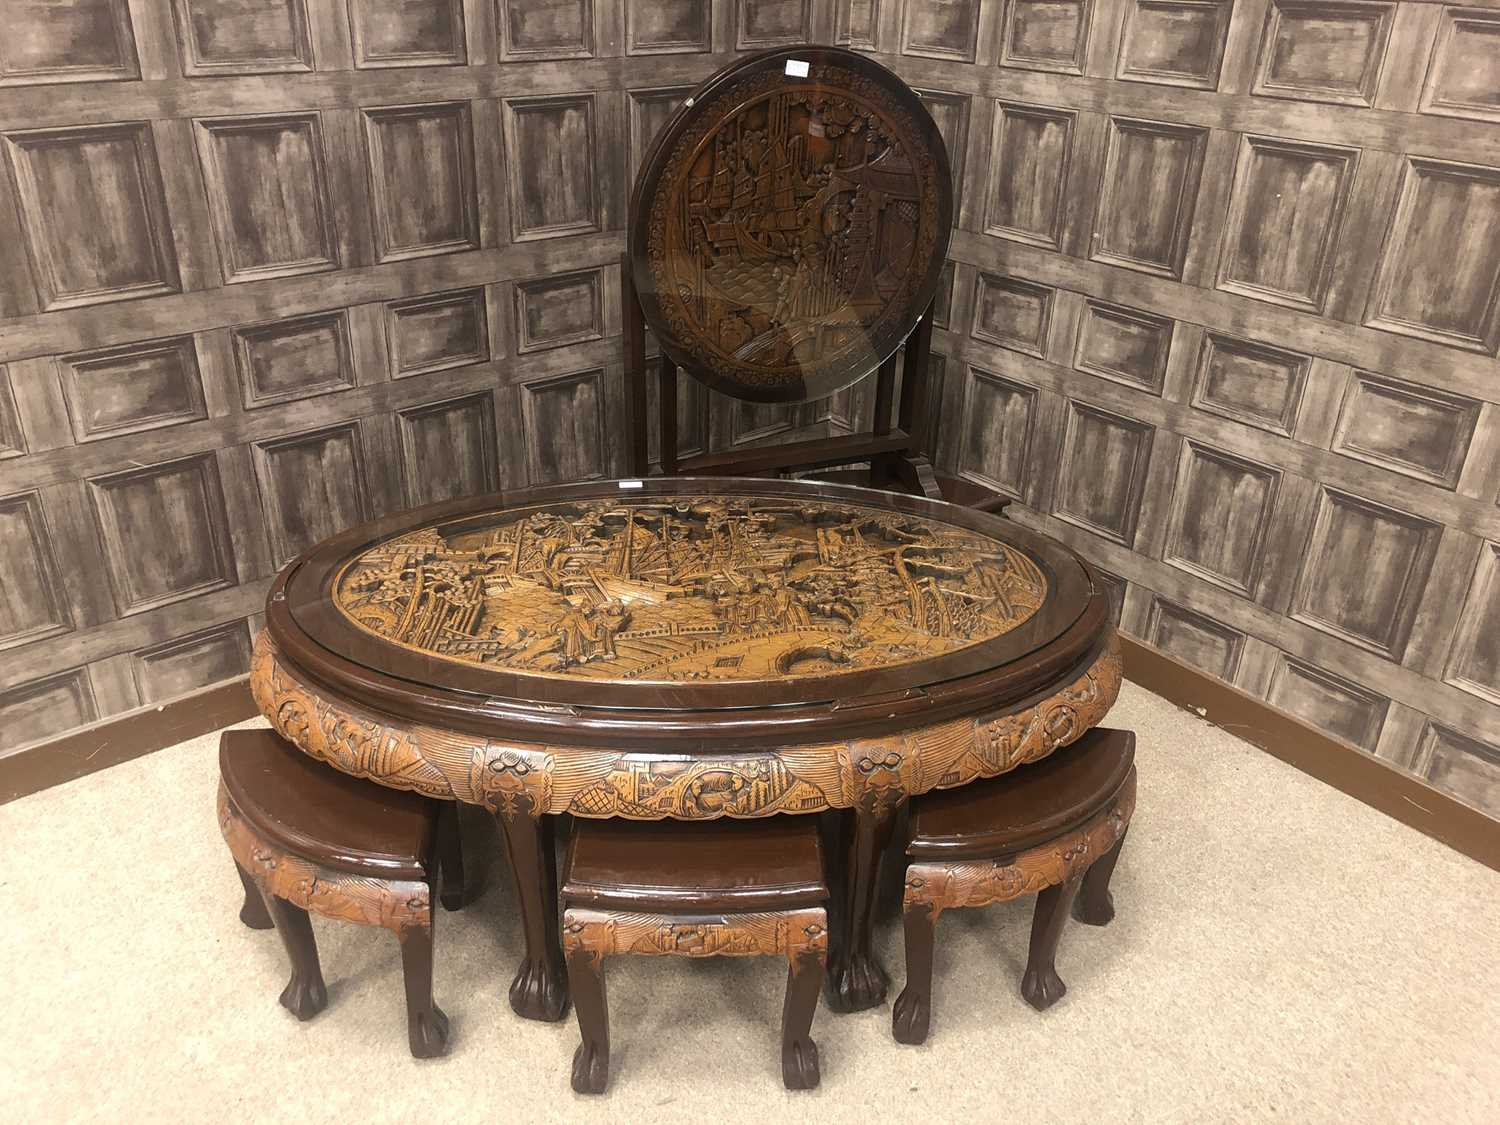 Lot 732 - A CHINESE SET OF TABLES AND A TABLE/SCREEN